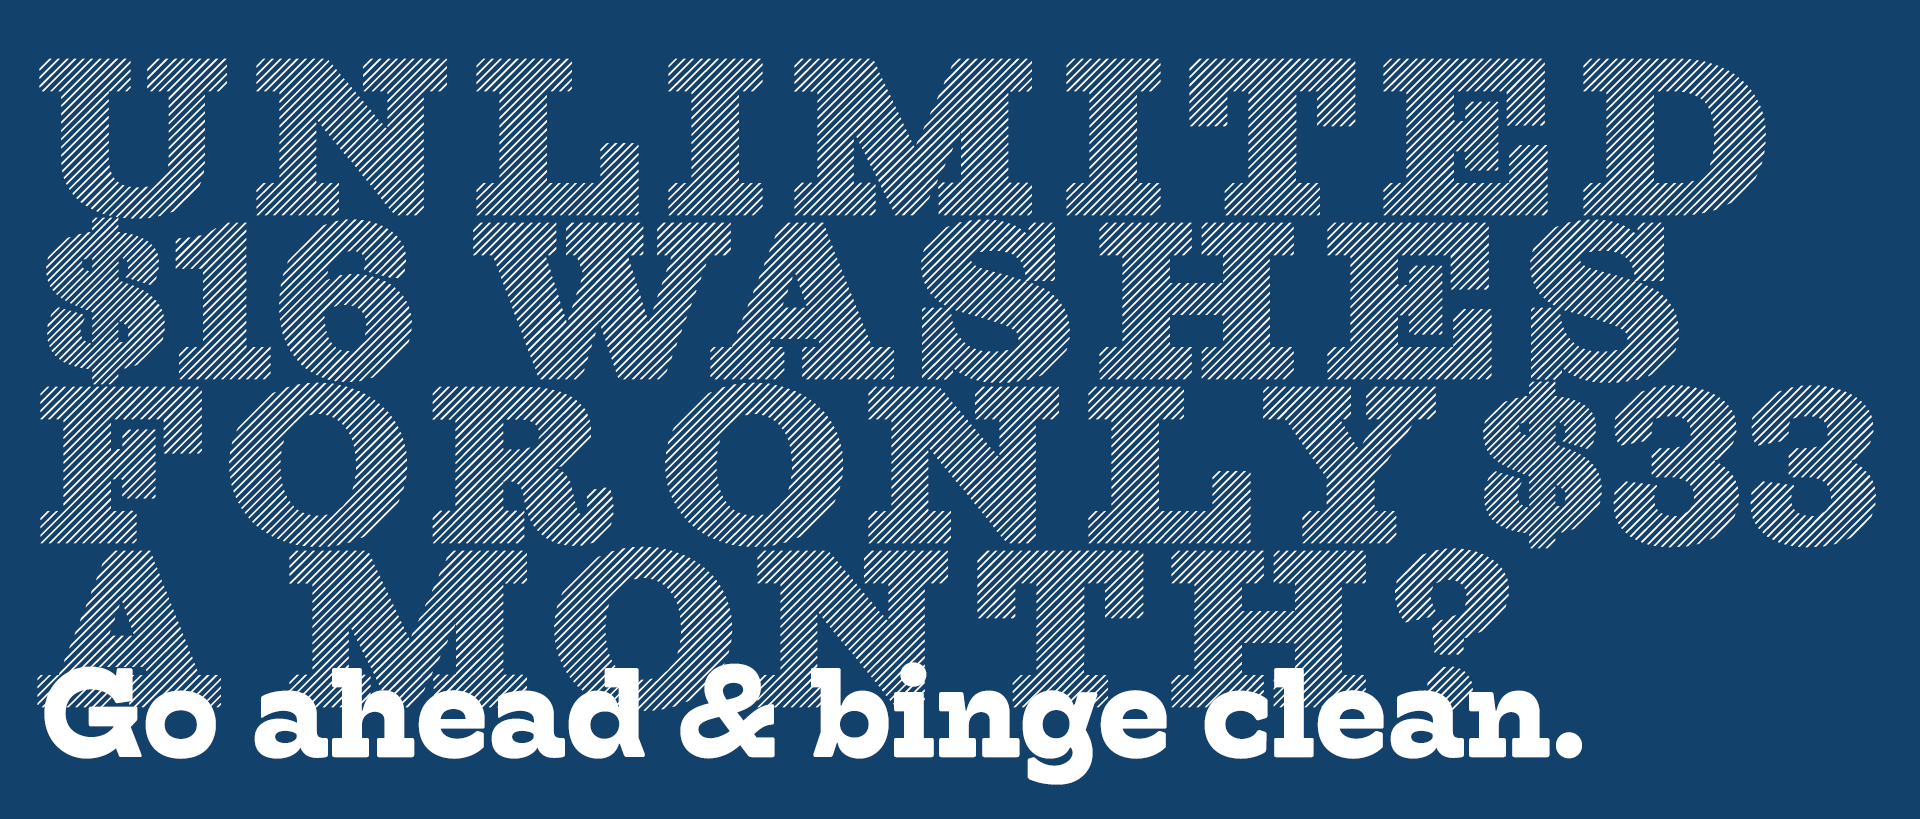 Unlimited $16 car washes for only $33 a month? Go ahead & binge clean.